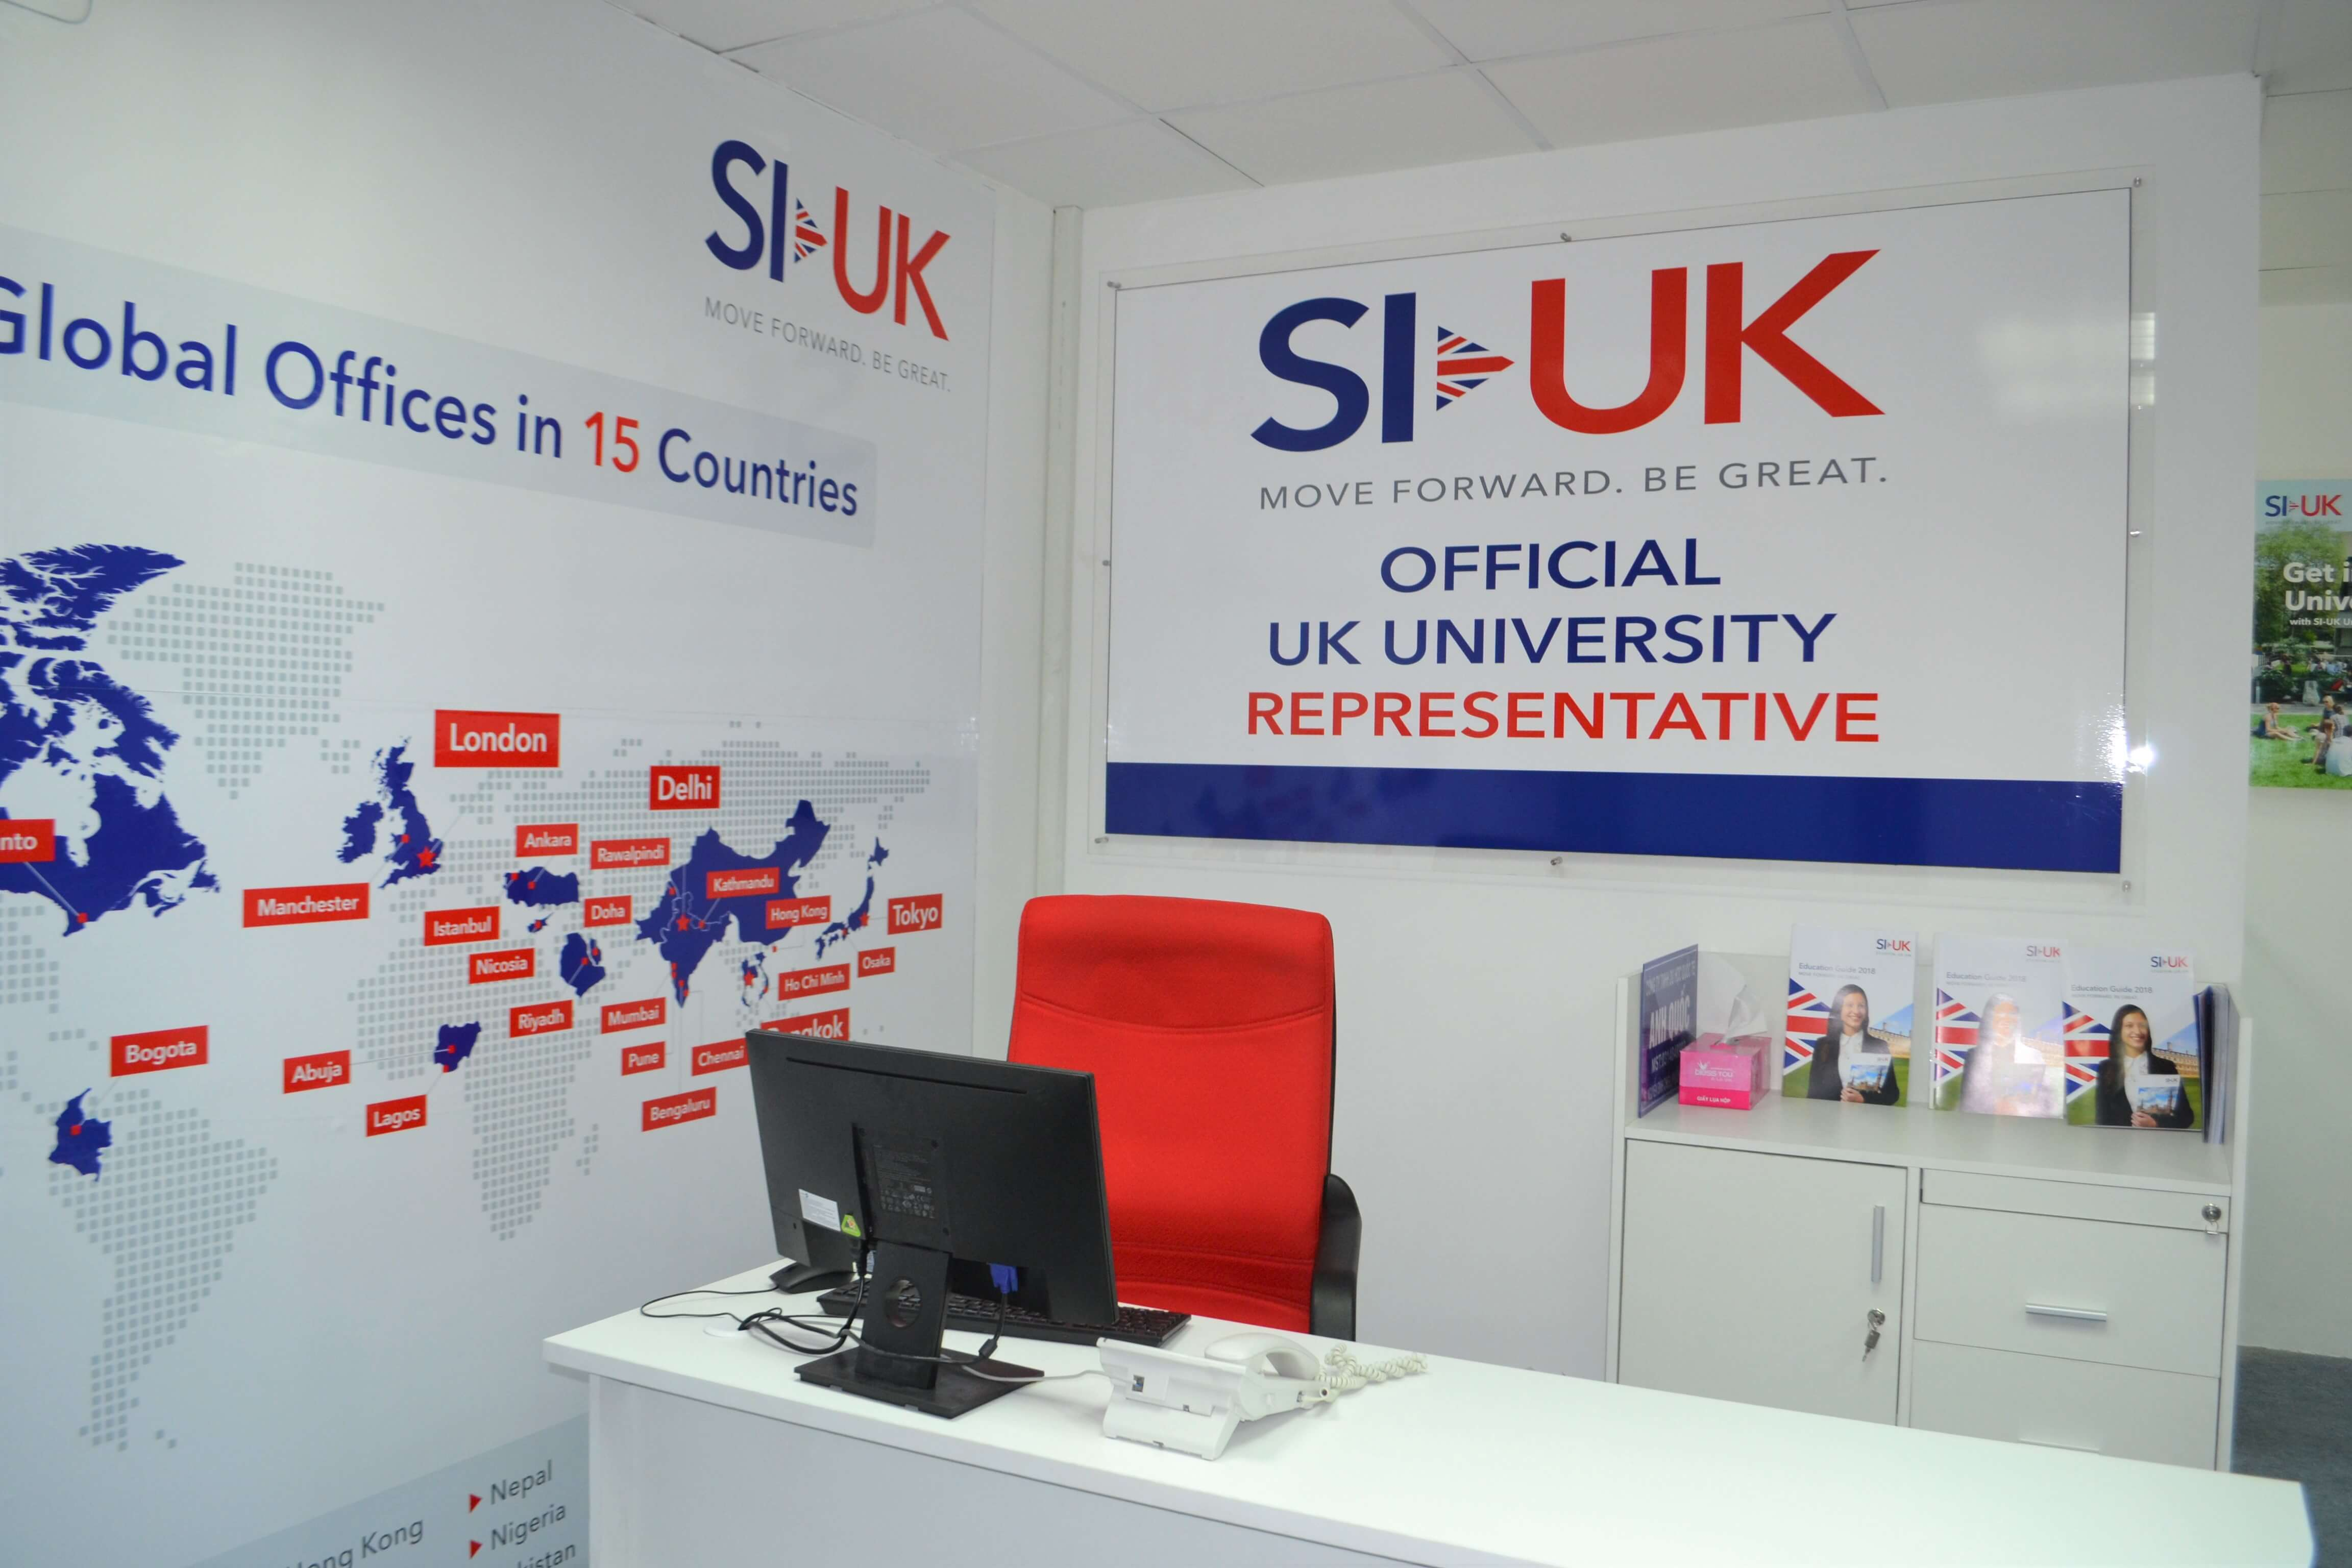 SI-UK officially launches Vietnam Office in Ho Chi Minh